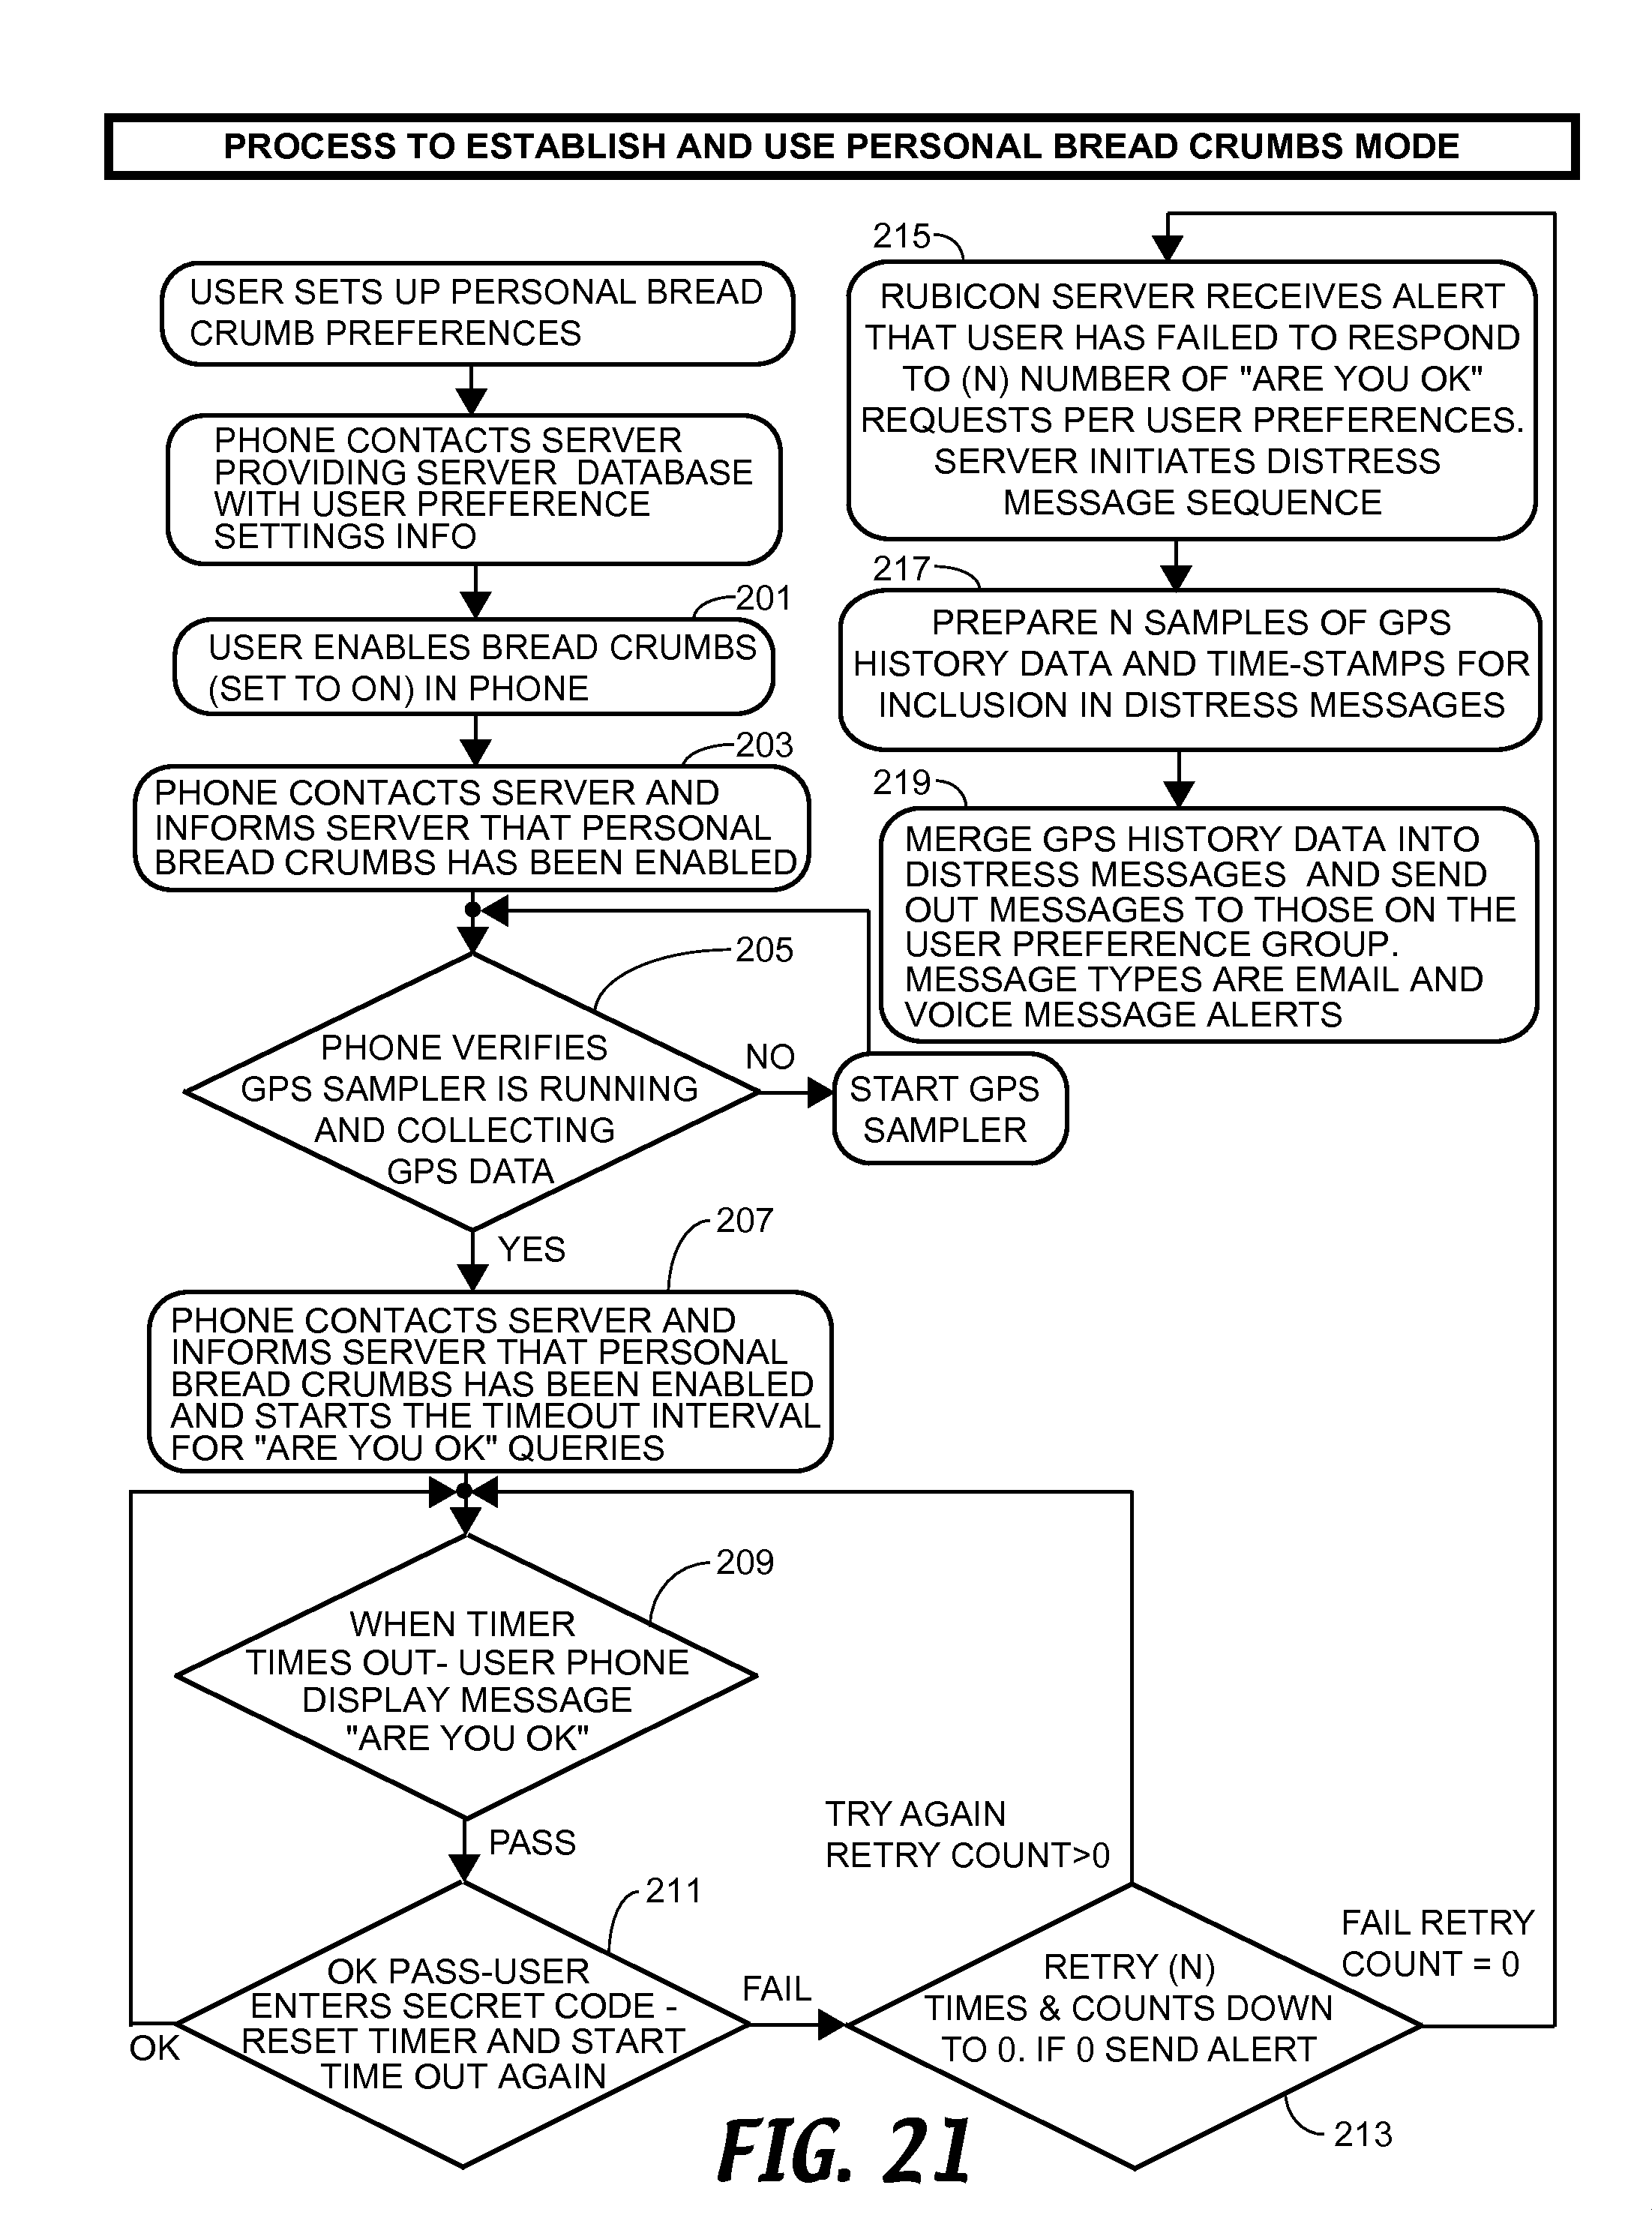 us8750898b2 methods and systems for annotating target locations  us8750898b2 methods and systems for annotating target locations patents